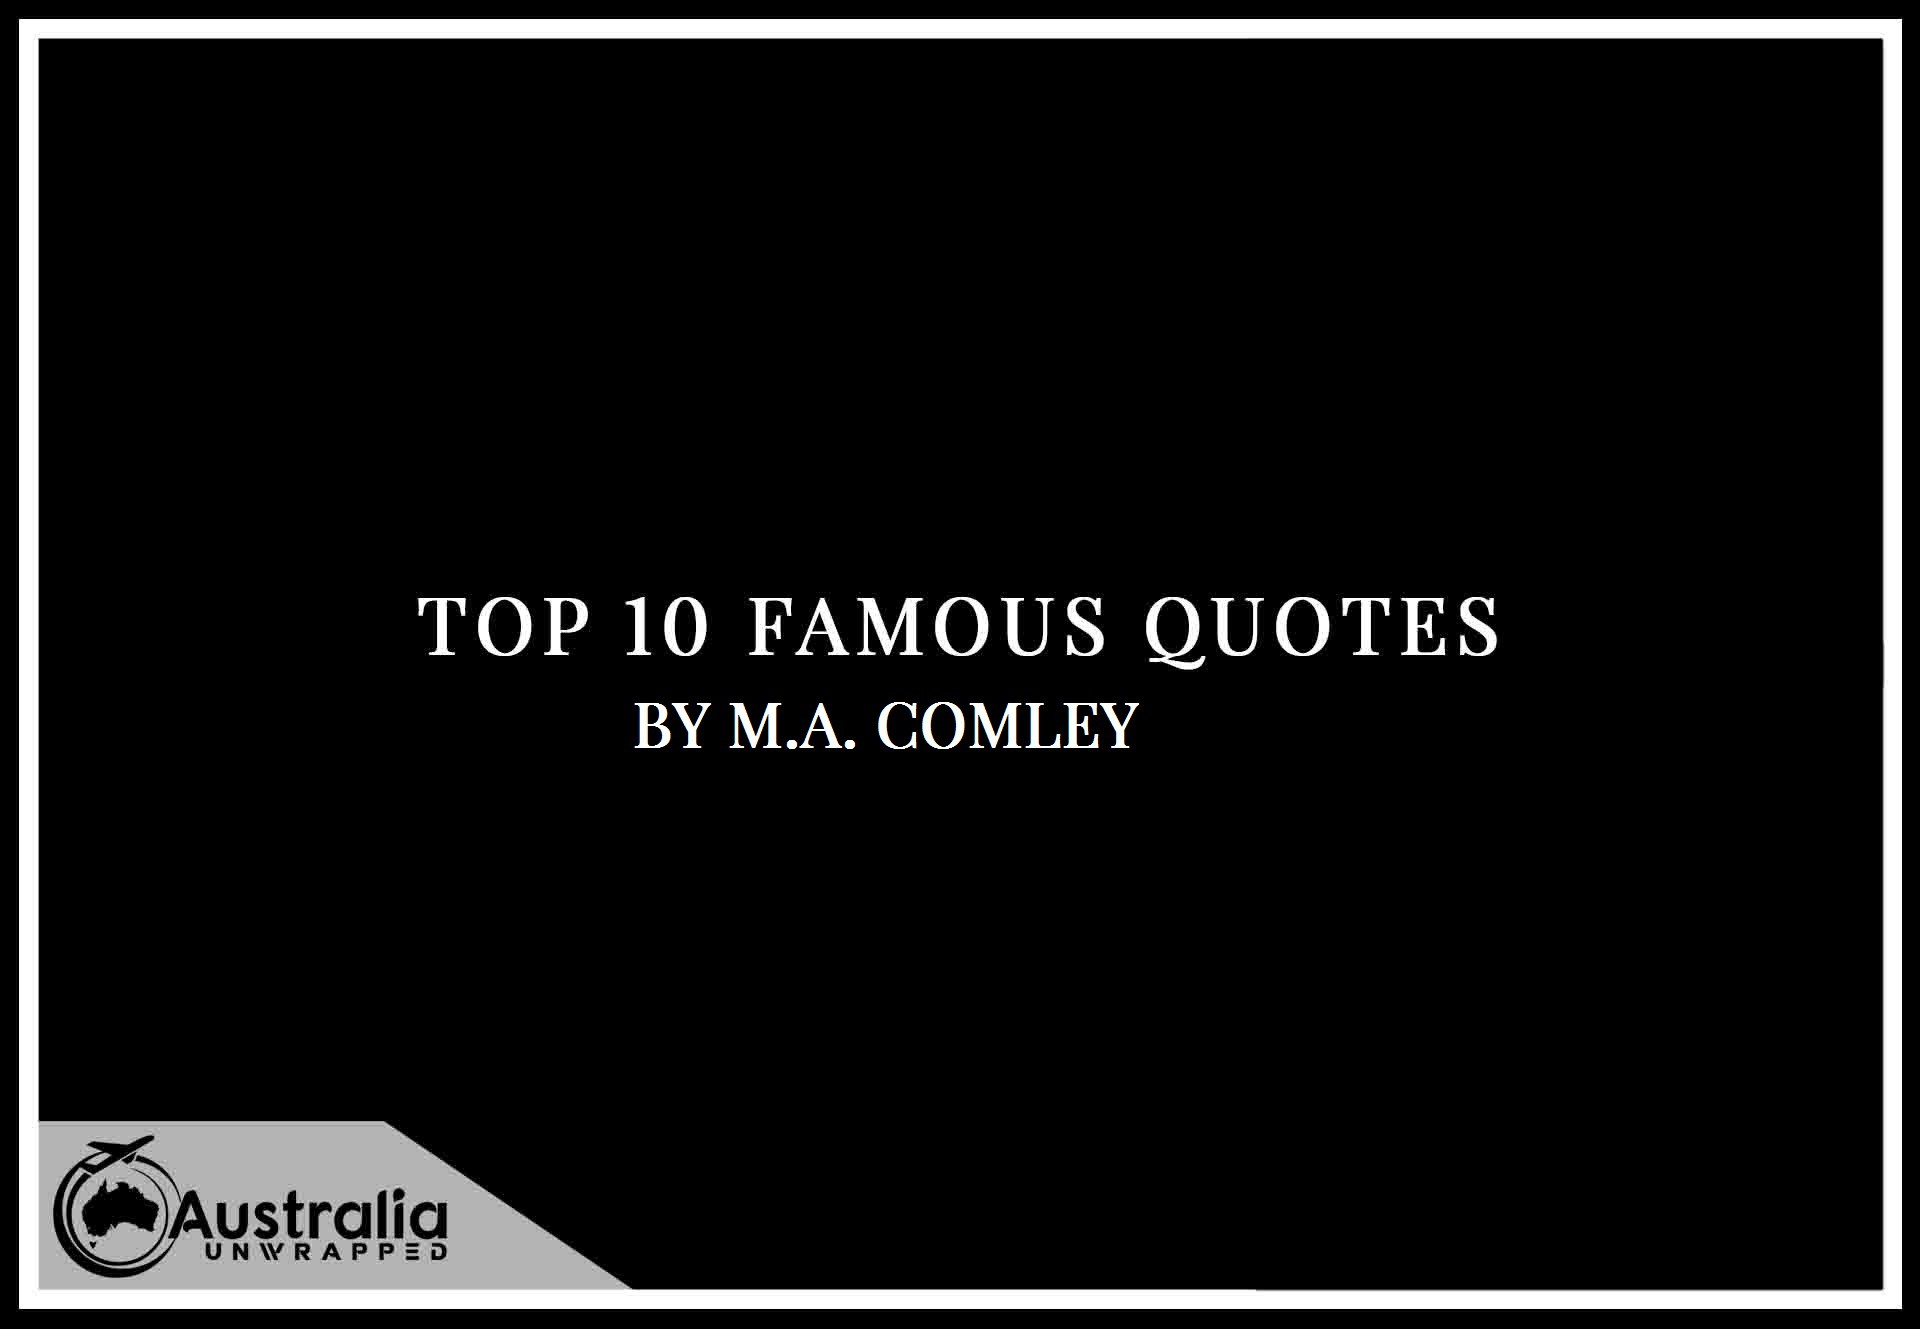 M.A. Comley's Top 10 Popular and Famous Quotes